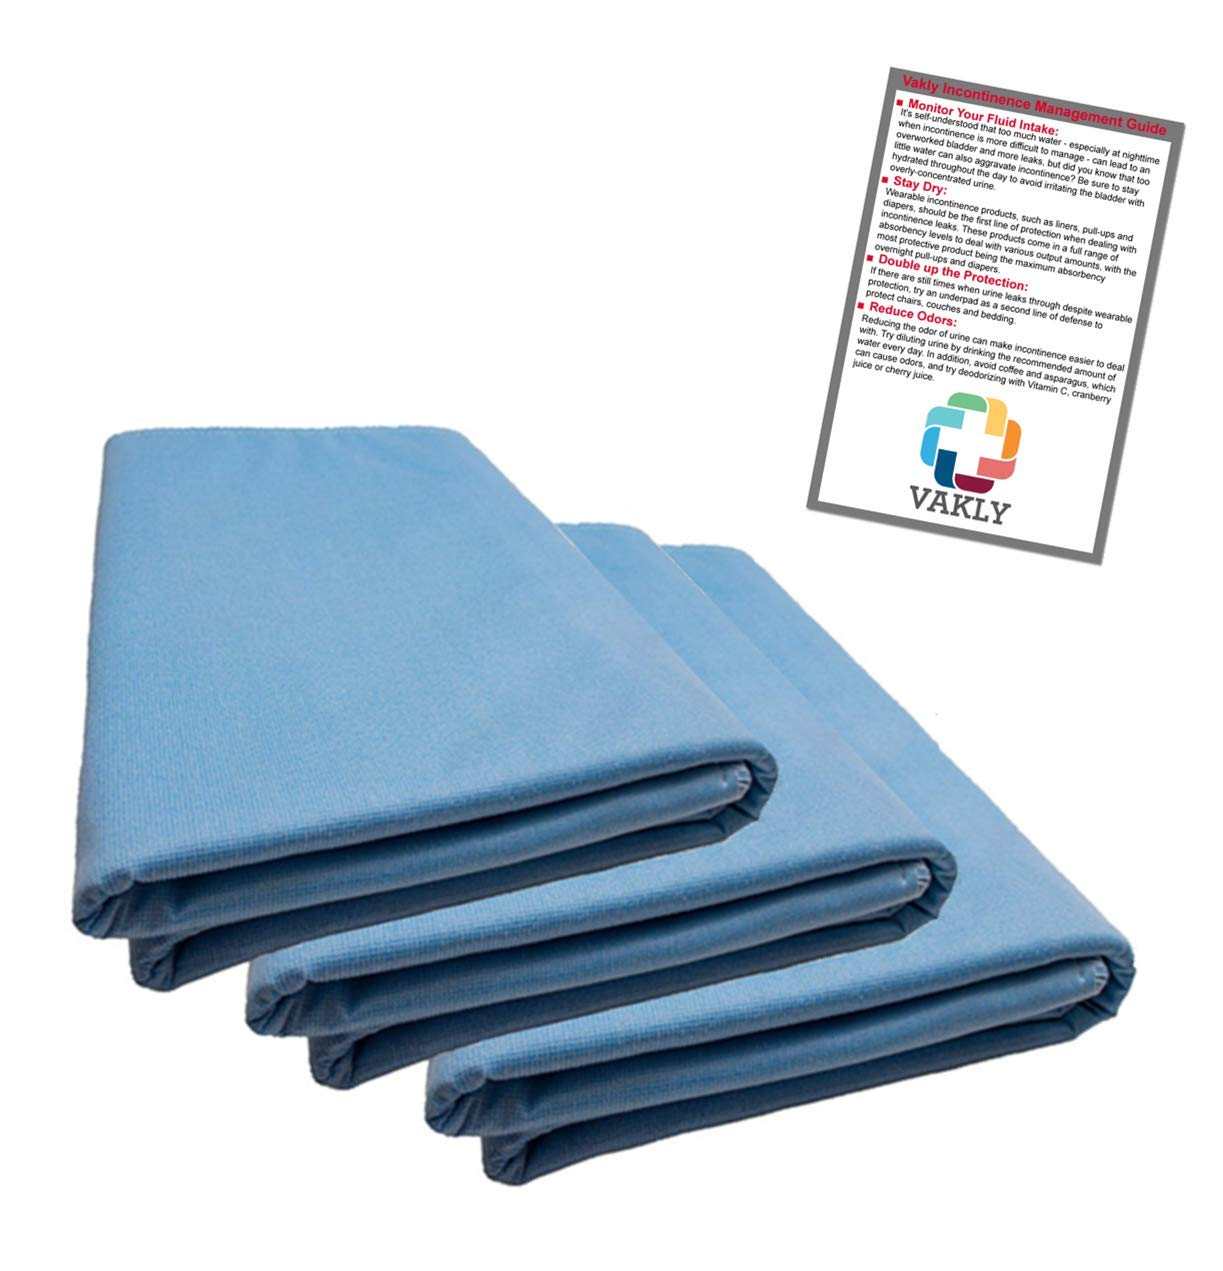 36'' x 54'' Reusable Underpad with 4-Layer Protection (3 Pack) + Vakly Incontinence Guide